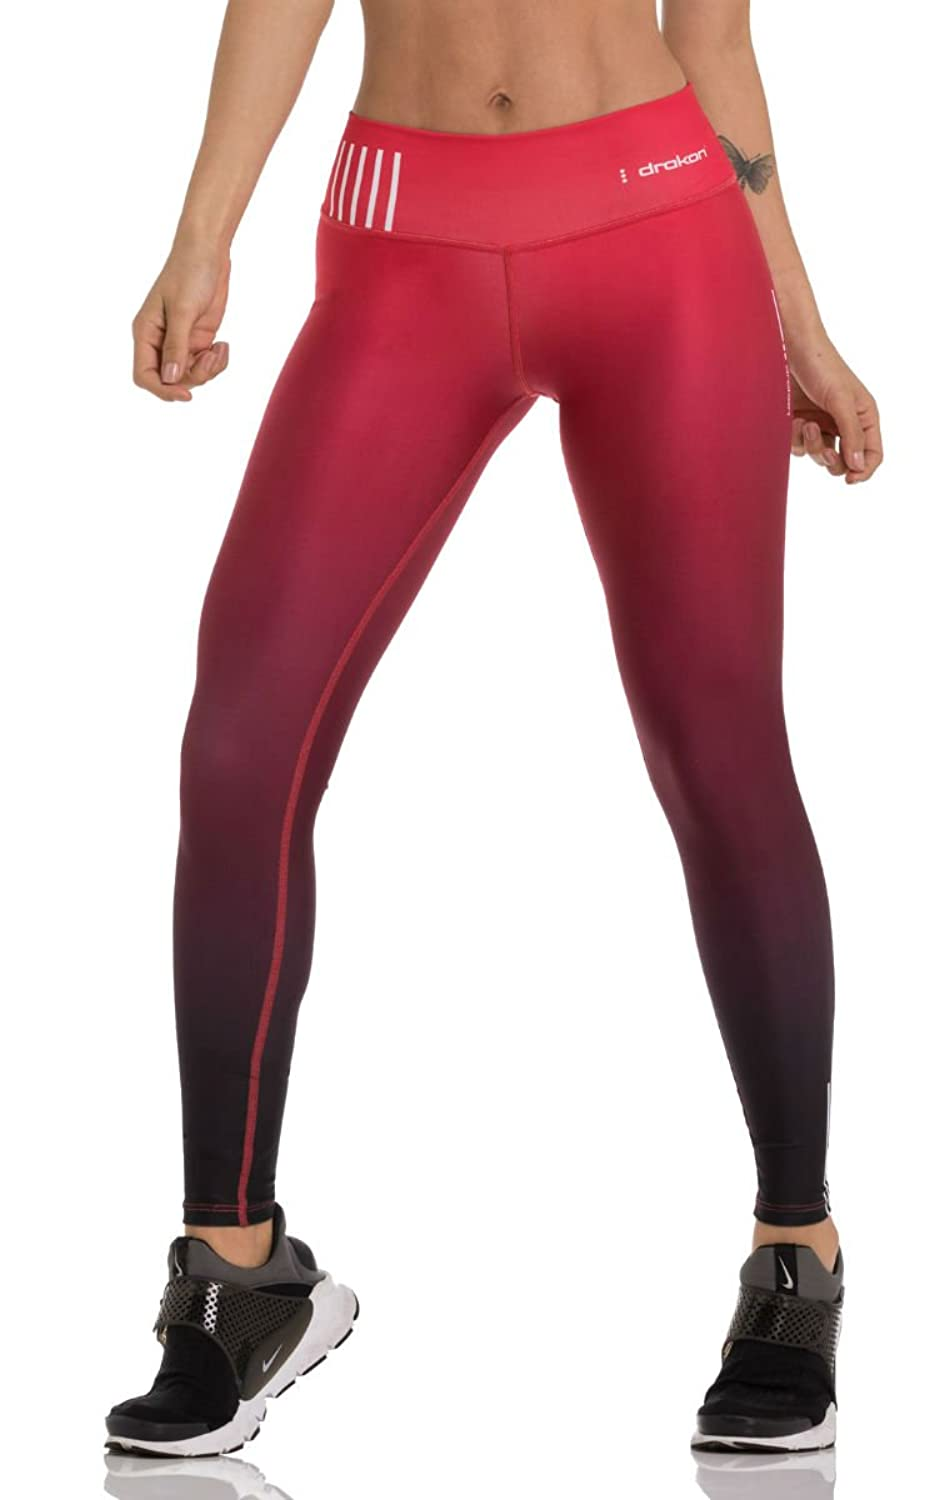 198543daf5 Drakon Many Styles of Crossfit Leggings Women Colombian Yoga Pants  Compression Tights